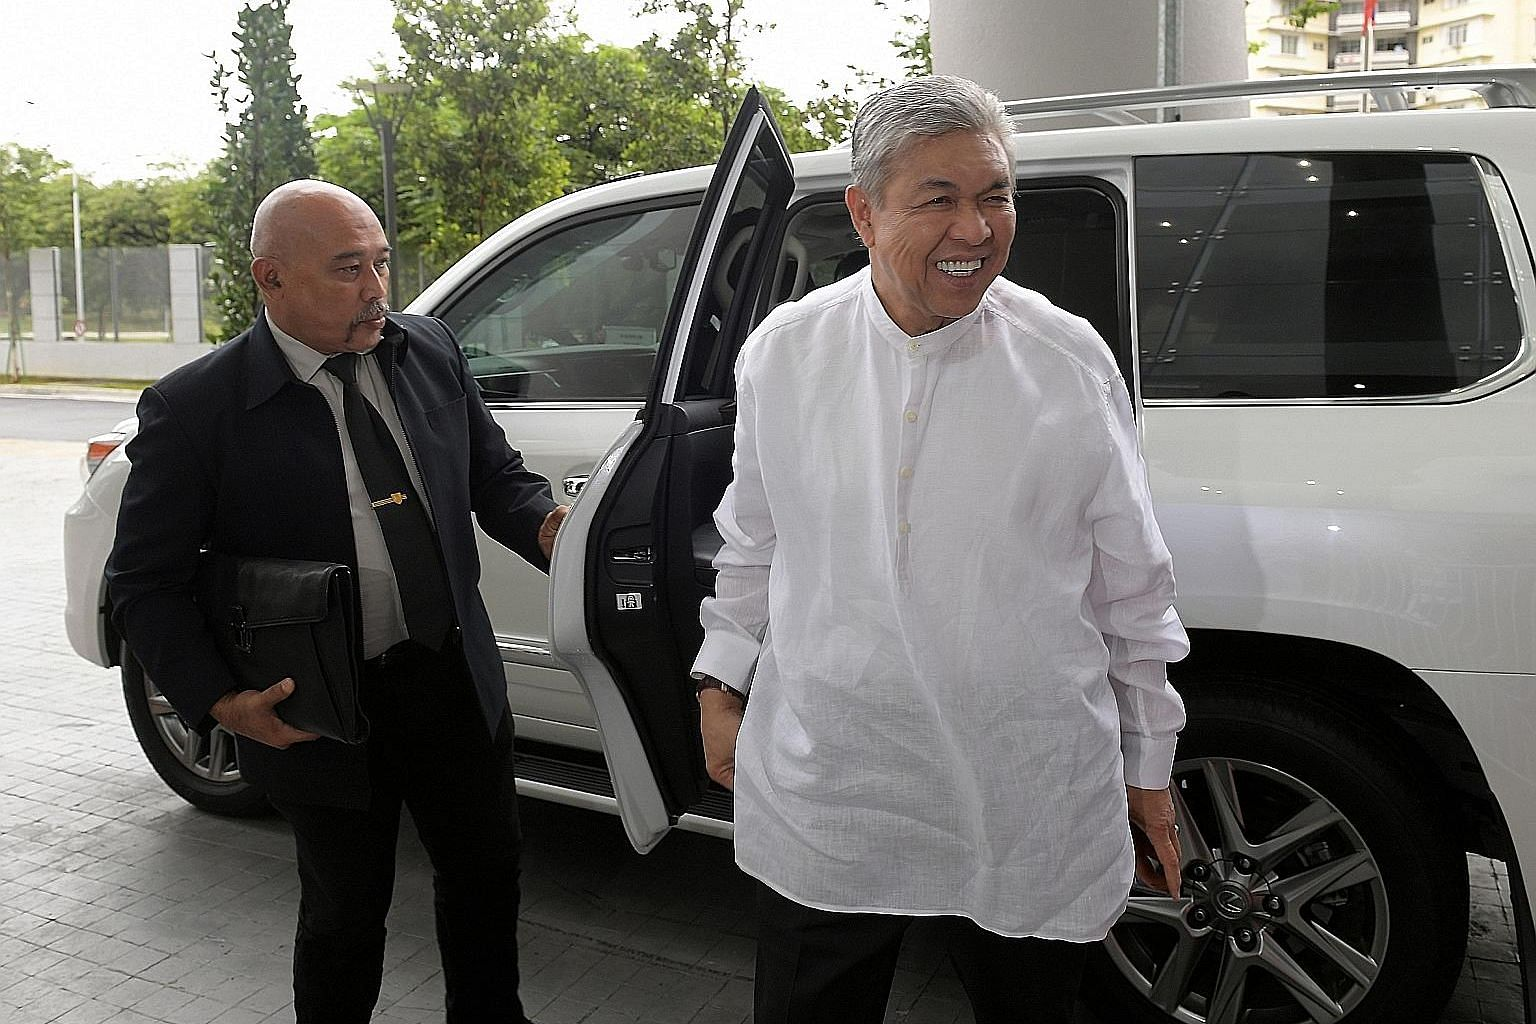 Datuk Seri Ahmad Zahid Hamidi arriving at MACC's headquarters in Putrajaya last Friday to give his statement regarding a probe into misappropriation of funds belonging to his family-owned welfare foundation.